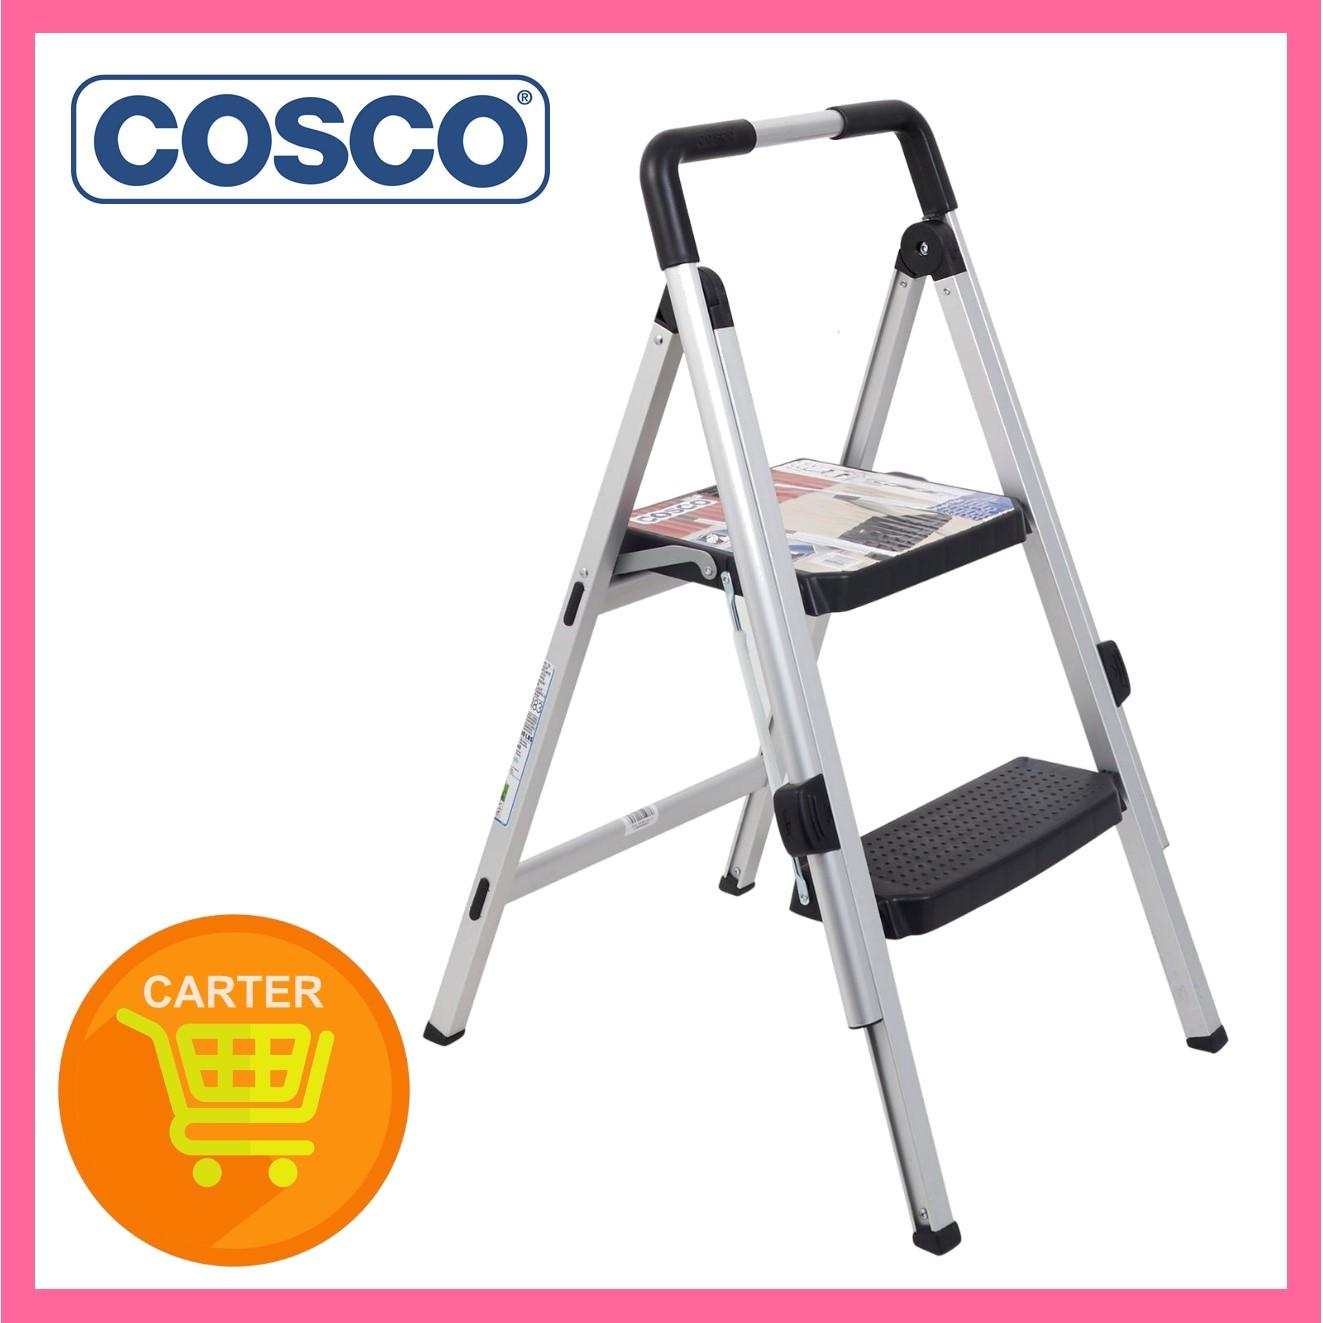 COSCO 2 STEP MAGIC FOLD ALUMINUM LADDER SL5073